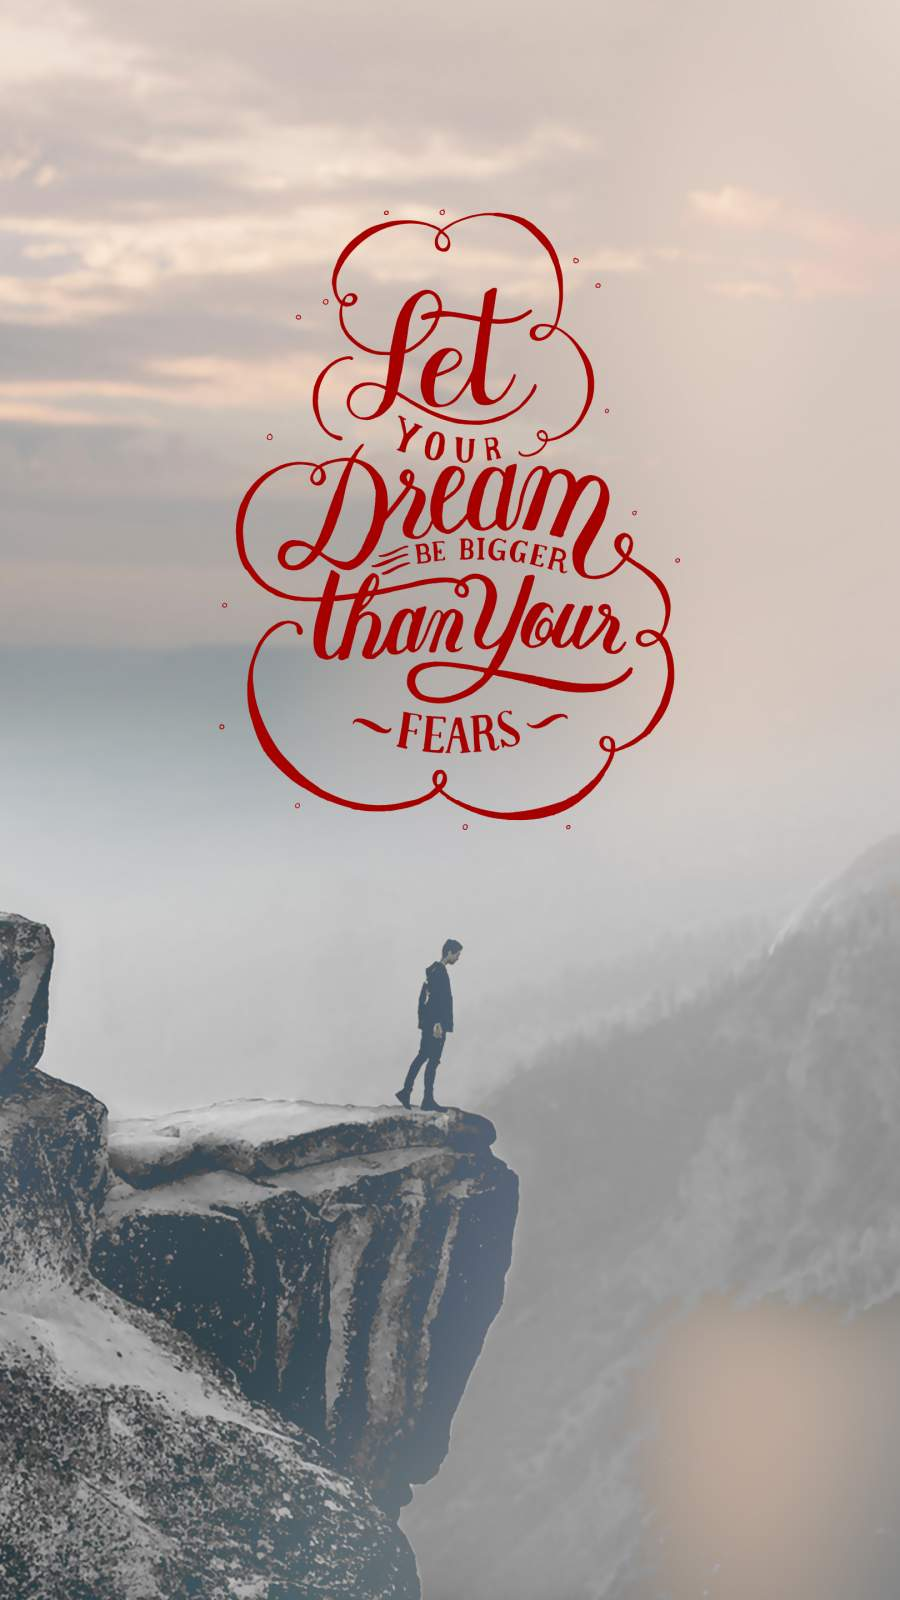 Let Your Dream Be Bigger than Your Fears iPhone Wallpaper